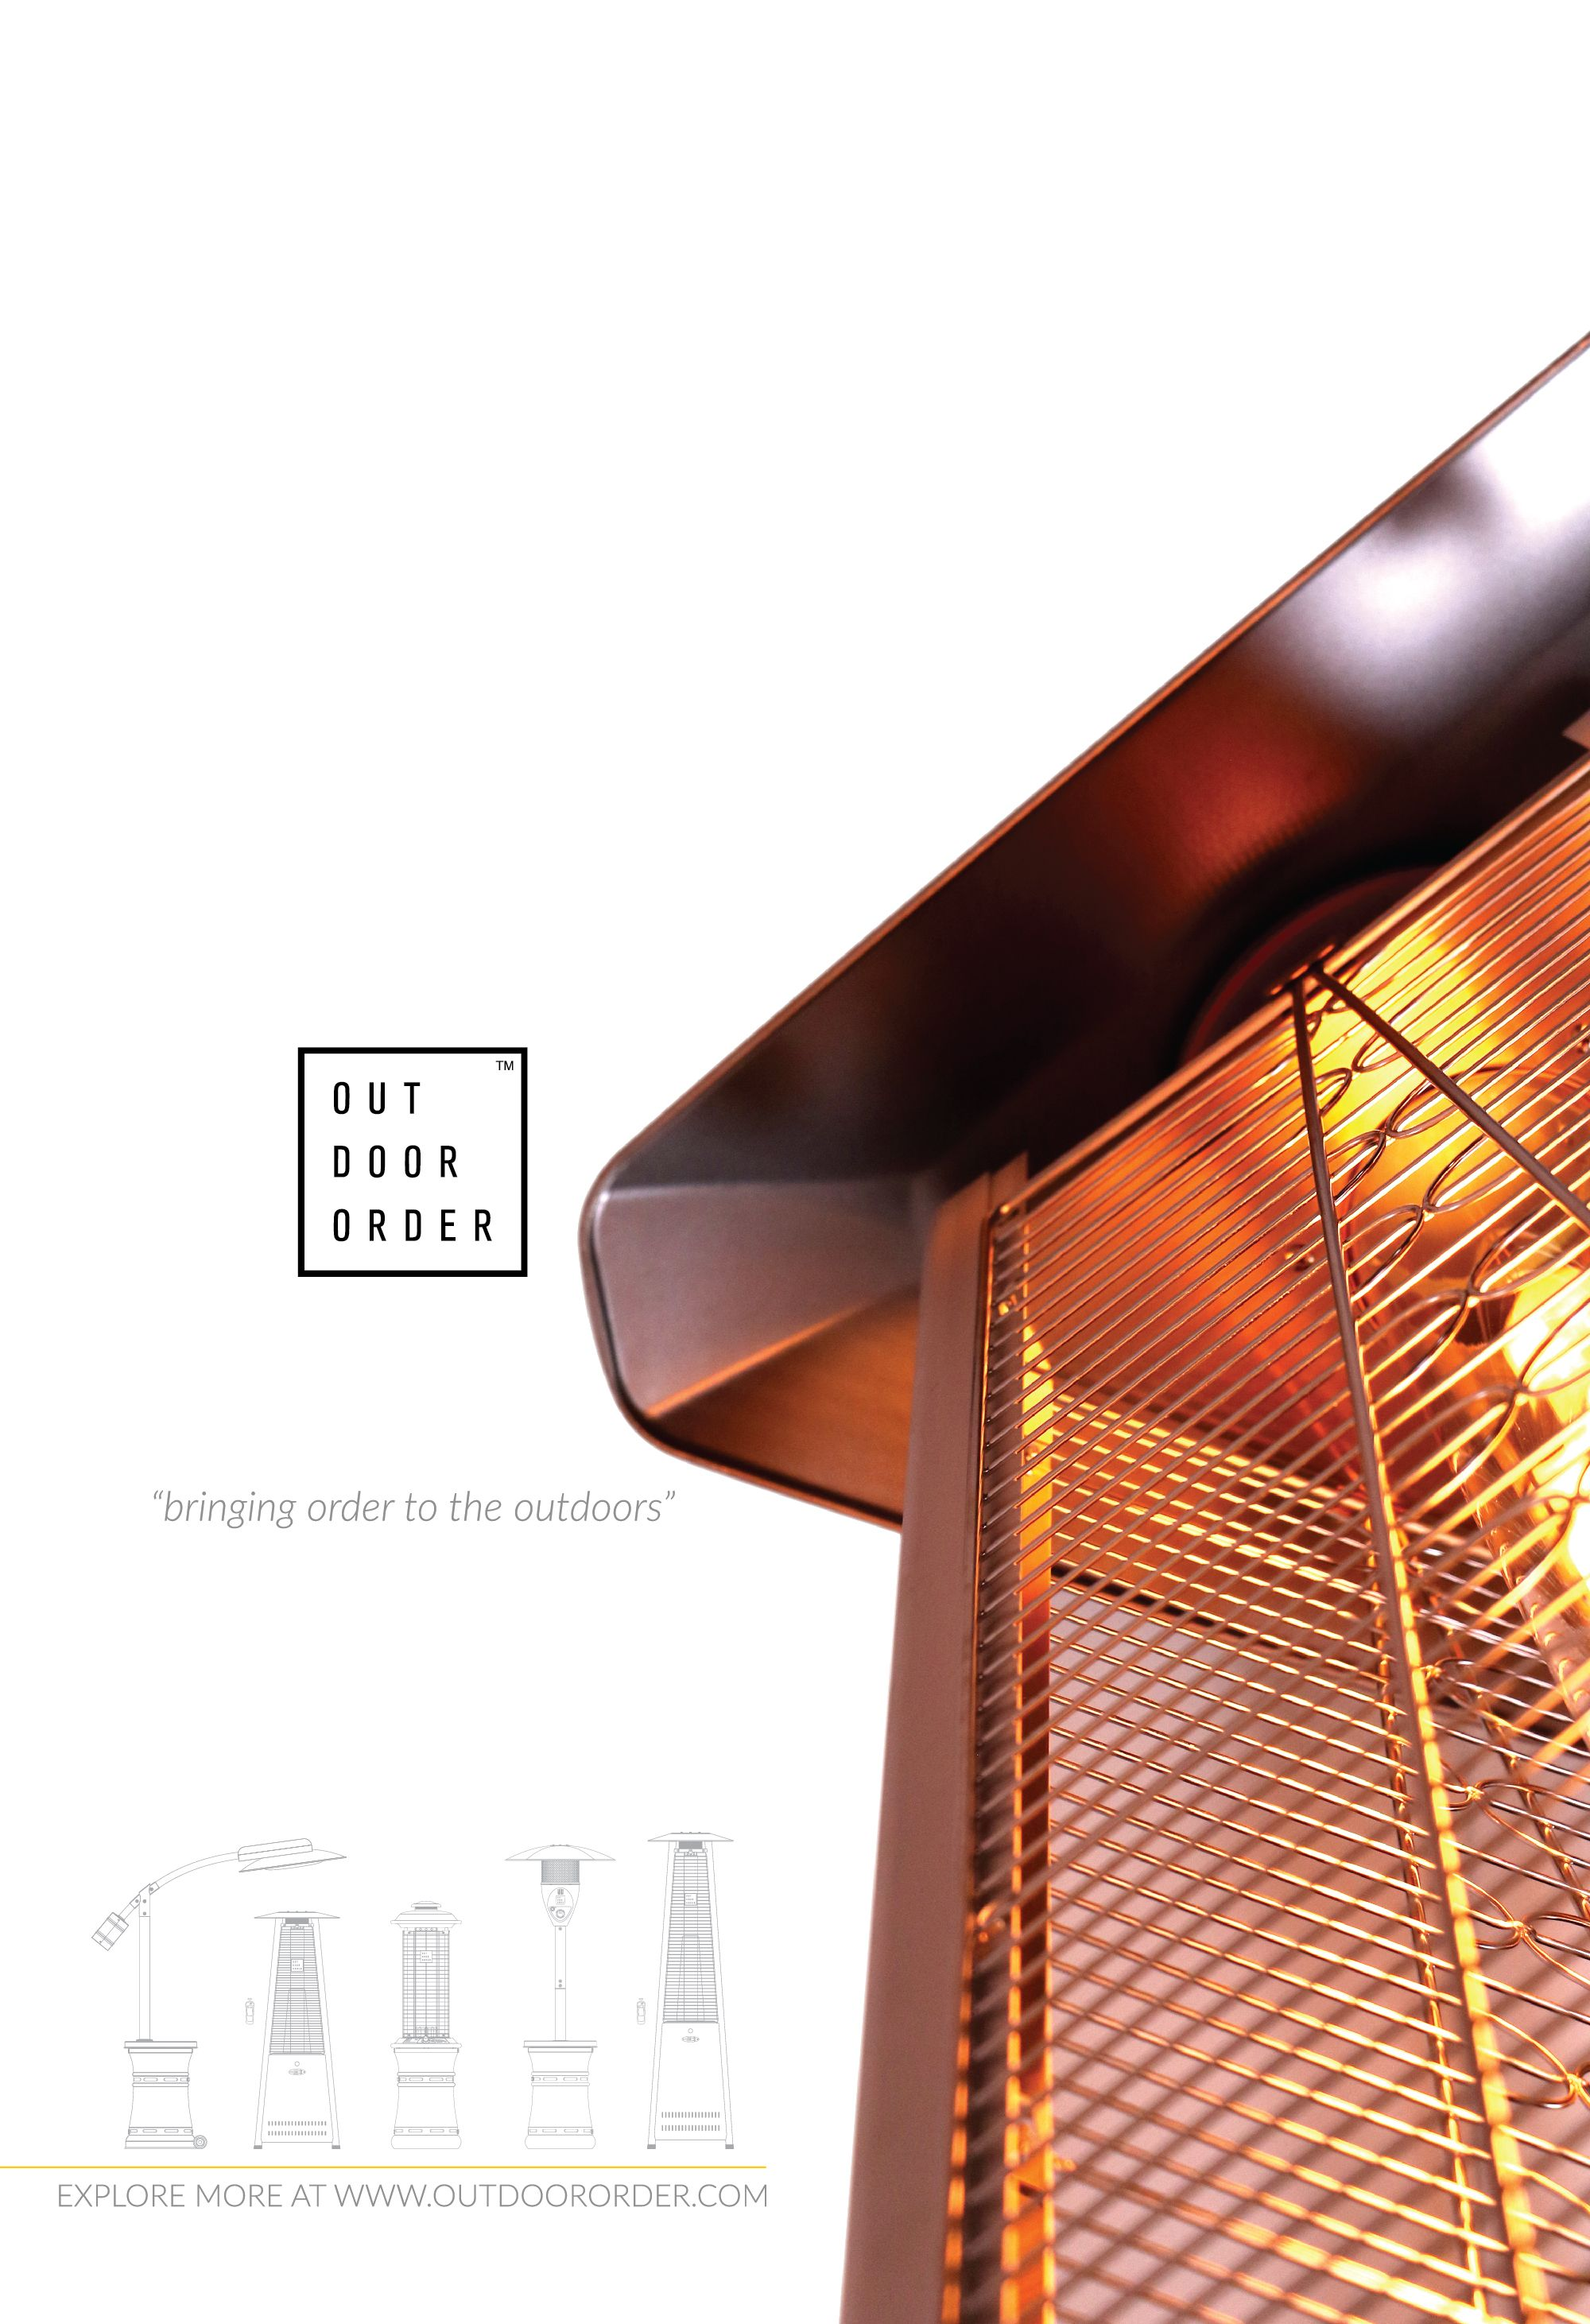 outdoor order is a us based manufacturer of outdoor heaters based